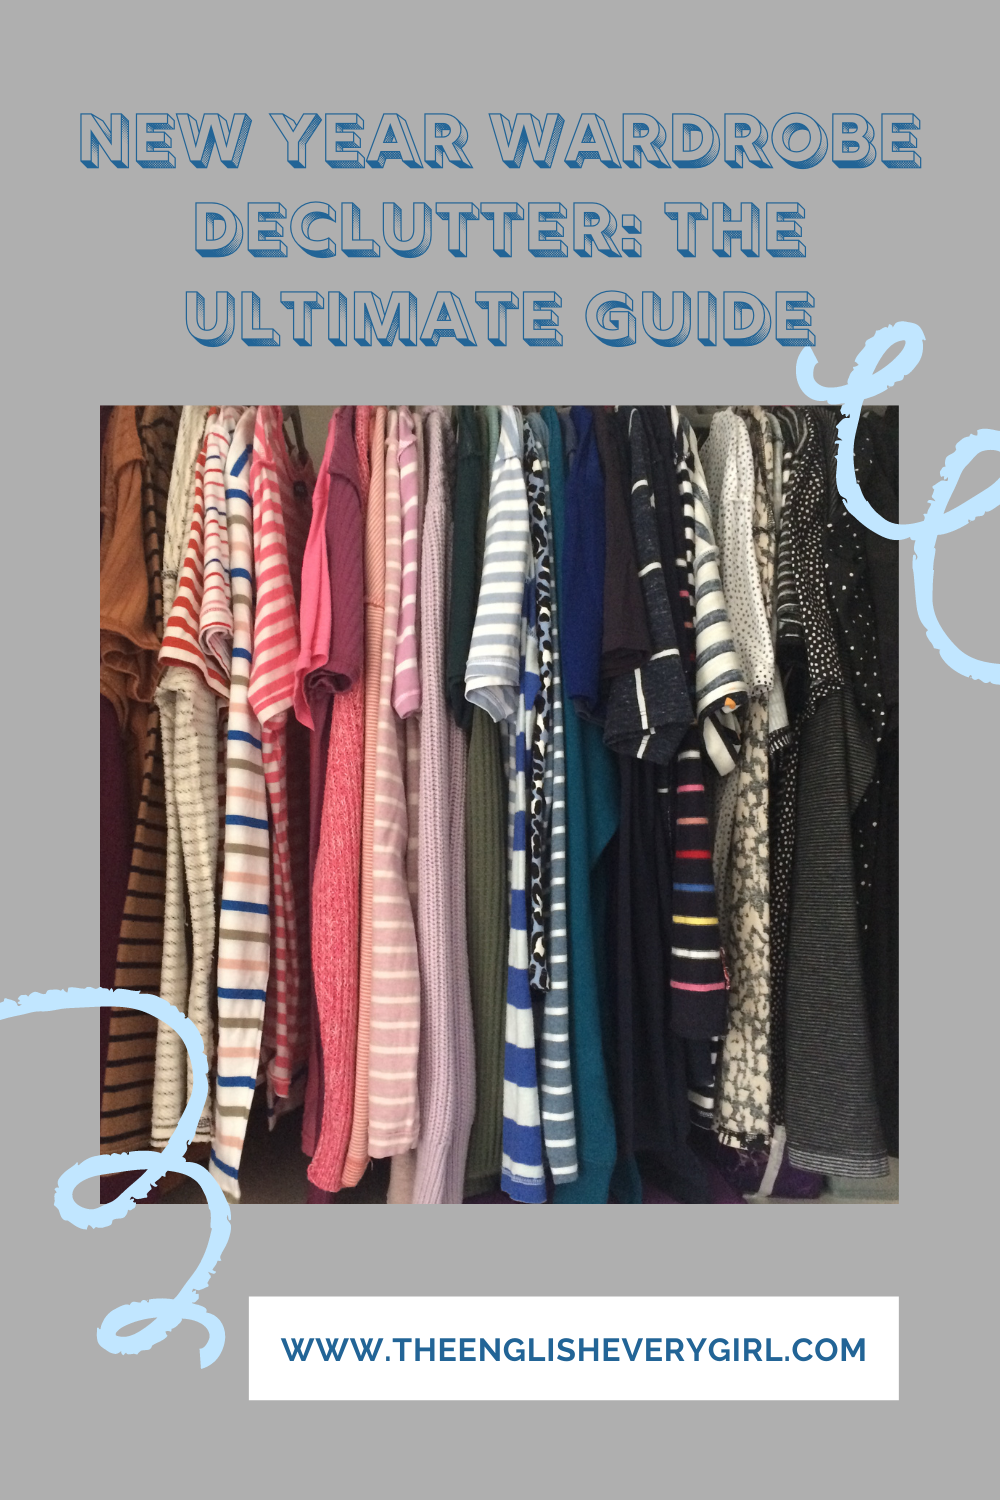 new-year-wardrobe-declutter-ultimate-guide-pinterest